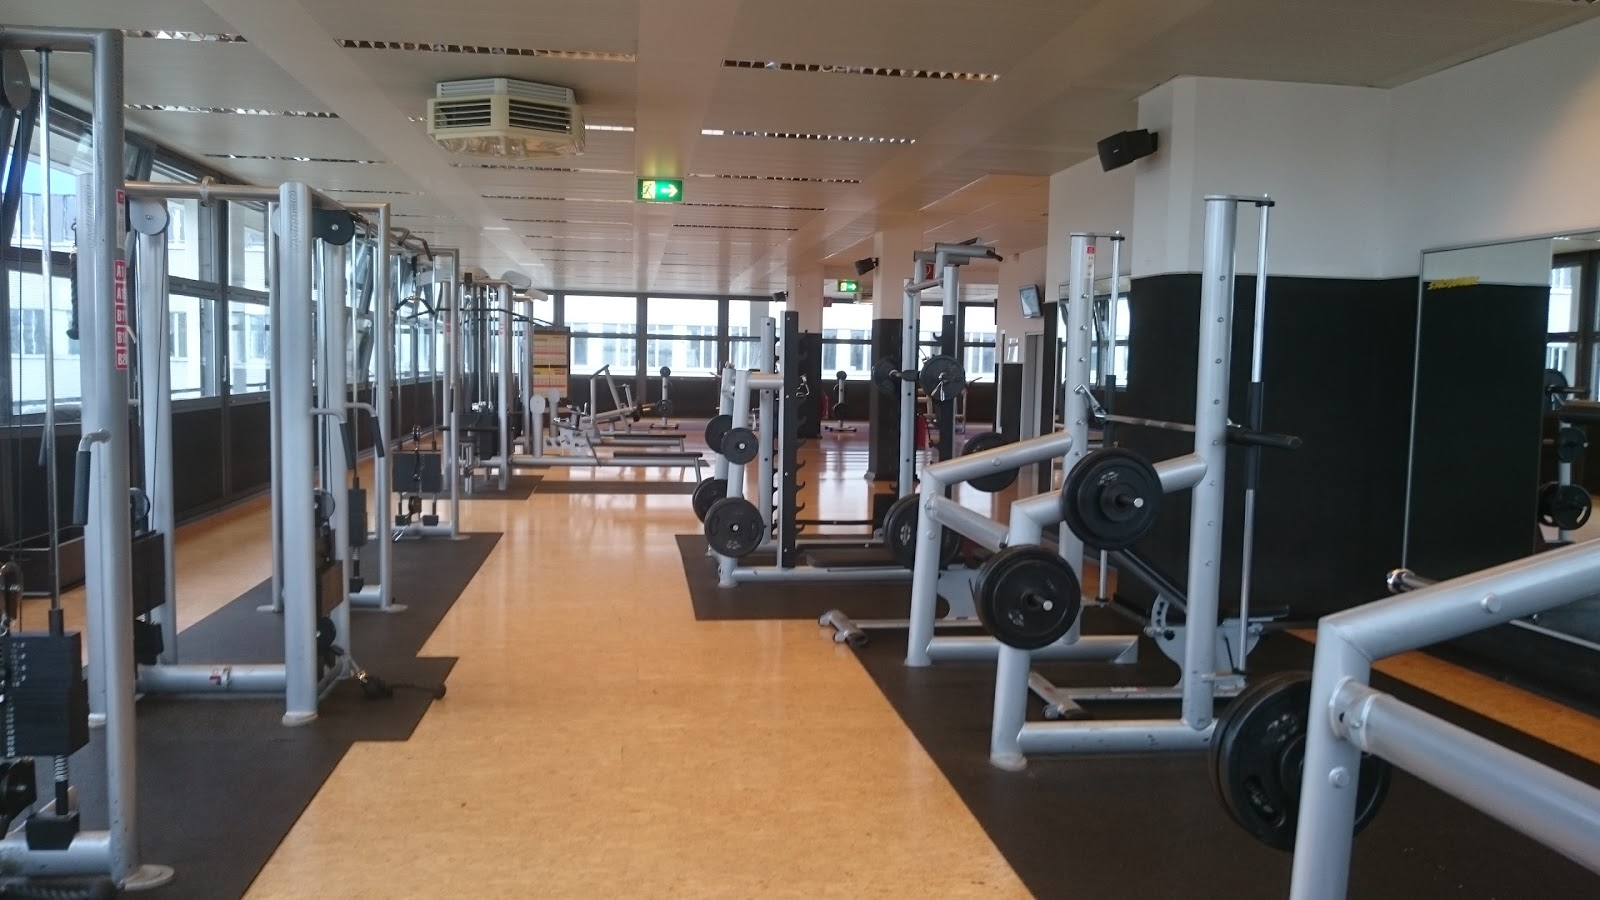 McFit gym Munich Obersendling - photo